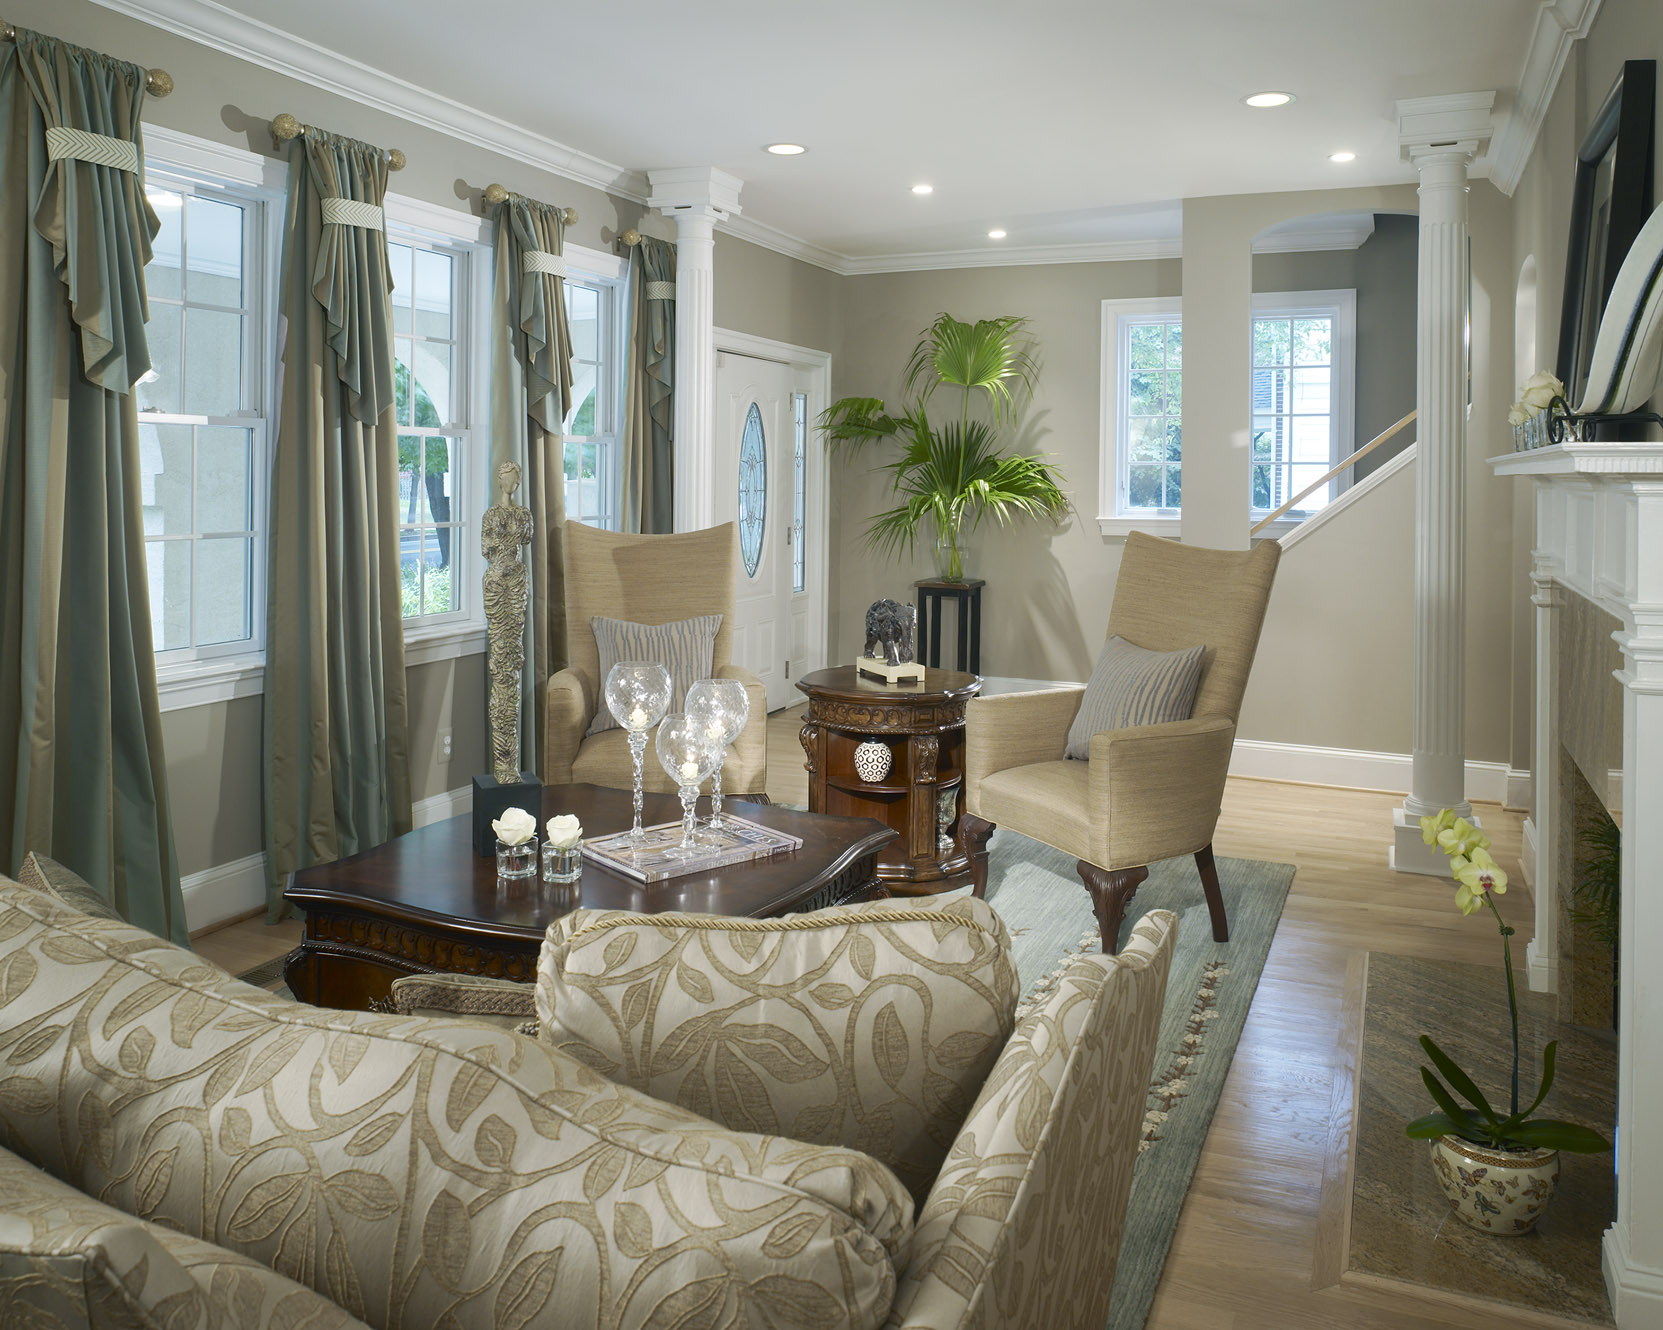 Terrific The Abcs Of Decorating S Is For Small Room Decorating Ideas Largest Home Design Picture Inspirations Pitcheantrous